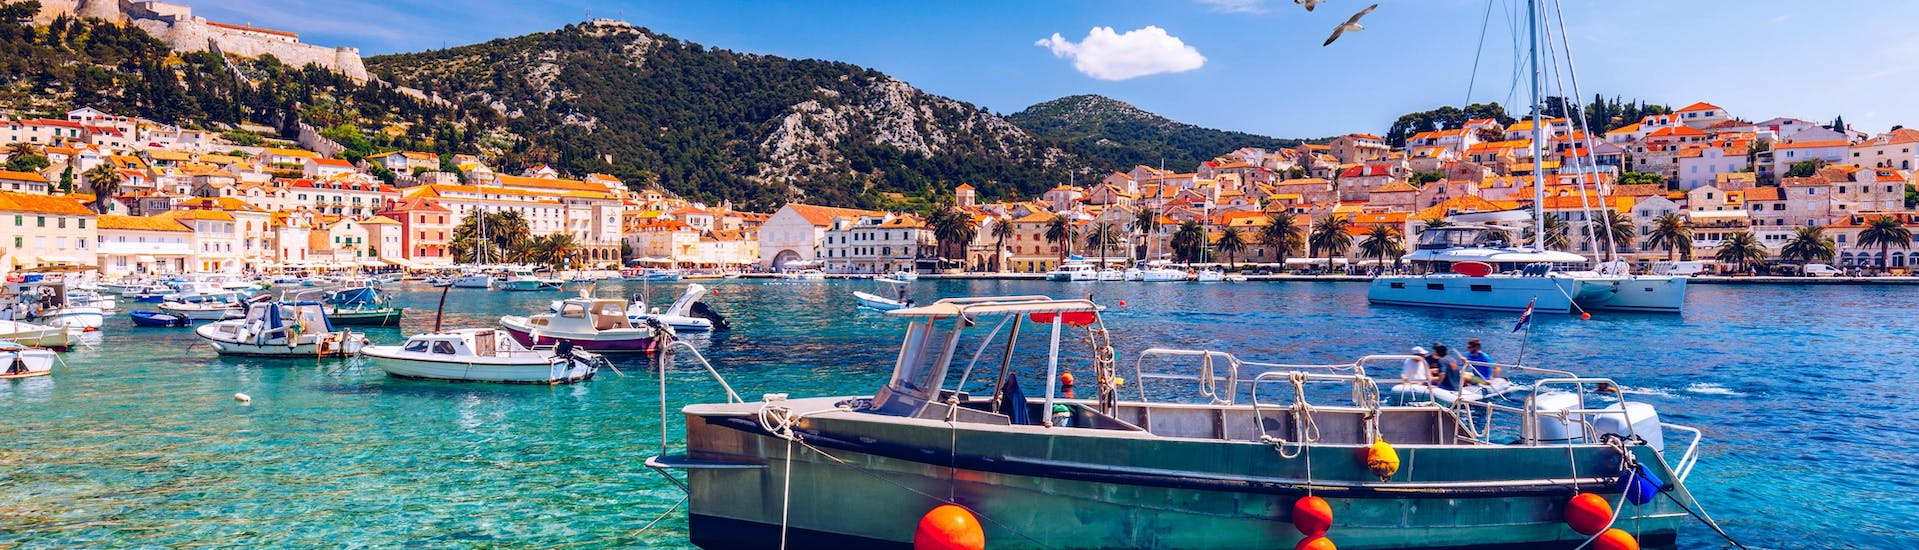 Boat trips from Hvar City are popular amongst tourists.